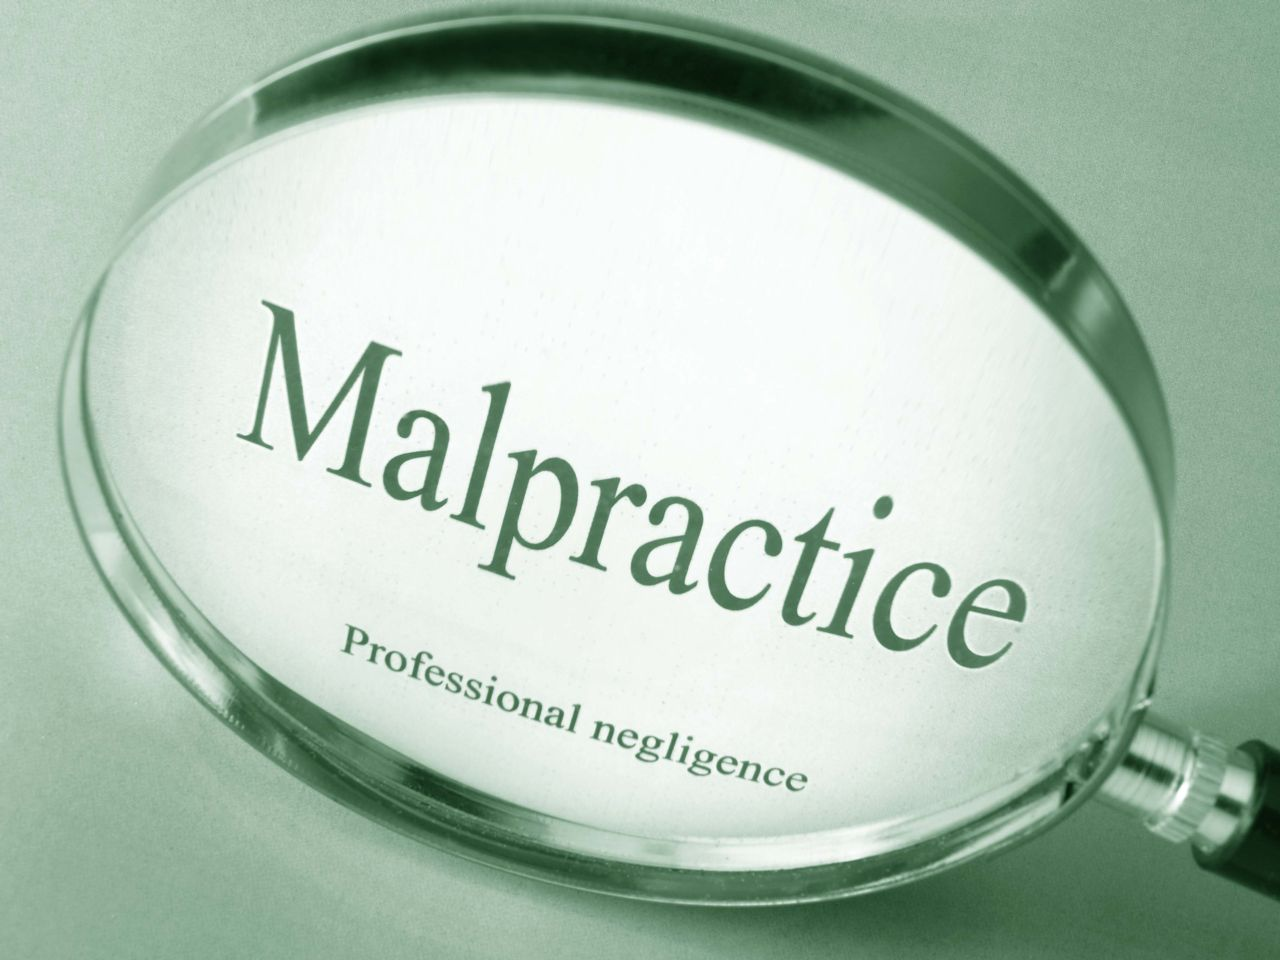 Medical Malpractice & Professional Negligence